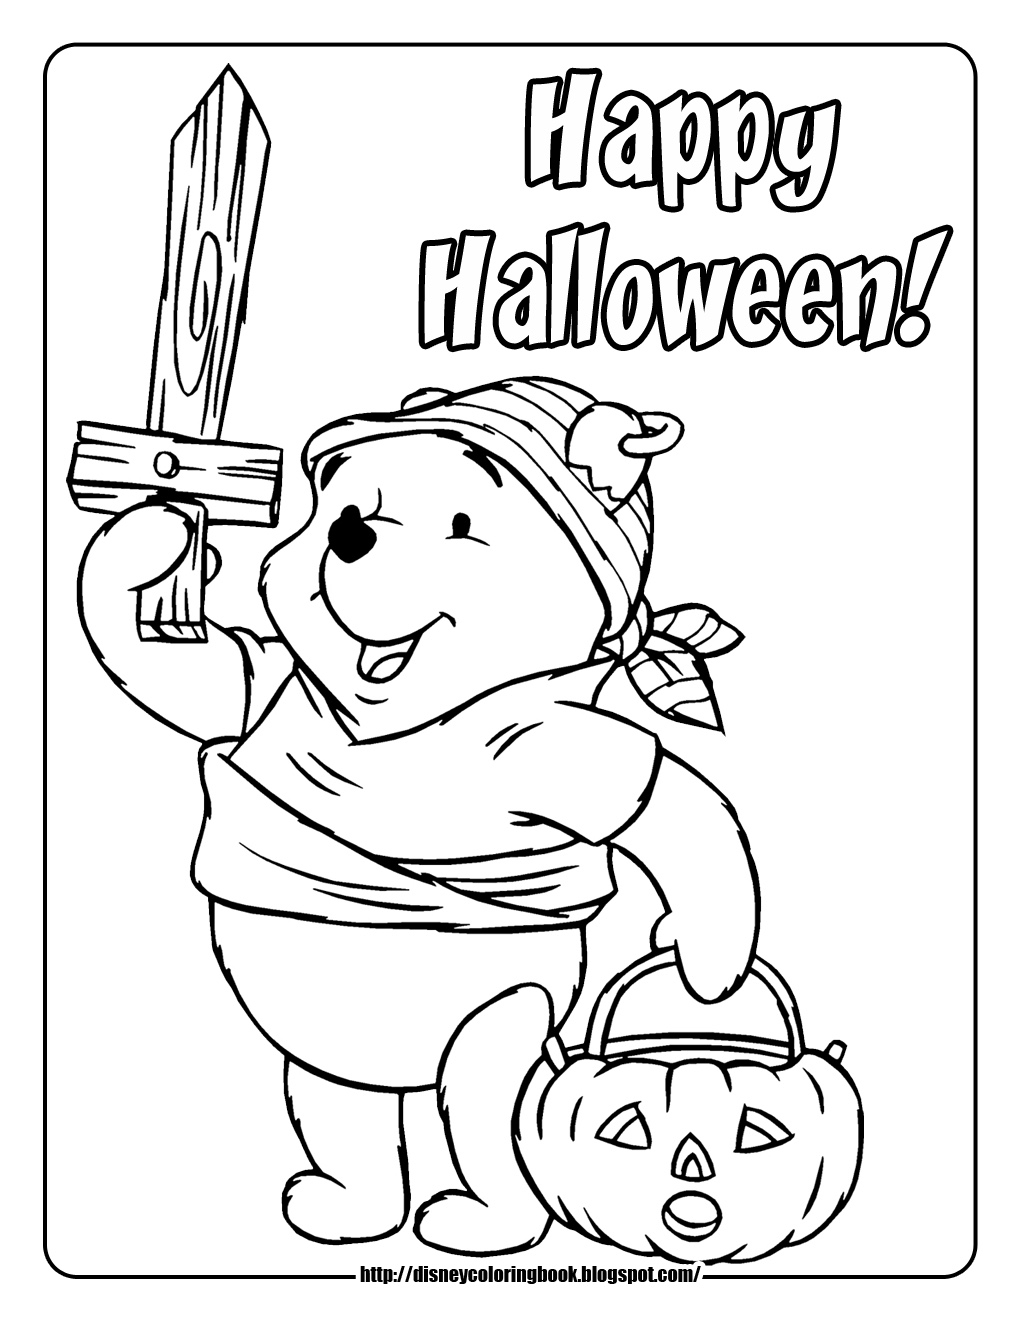 Disney Halloween Coloring Pages Pdf : Learn to coloring september